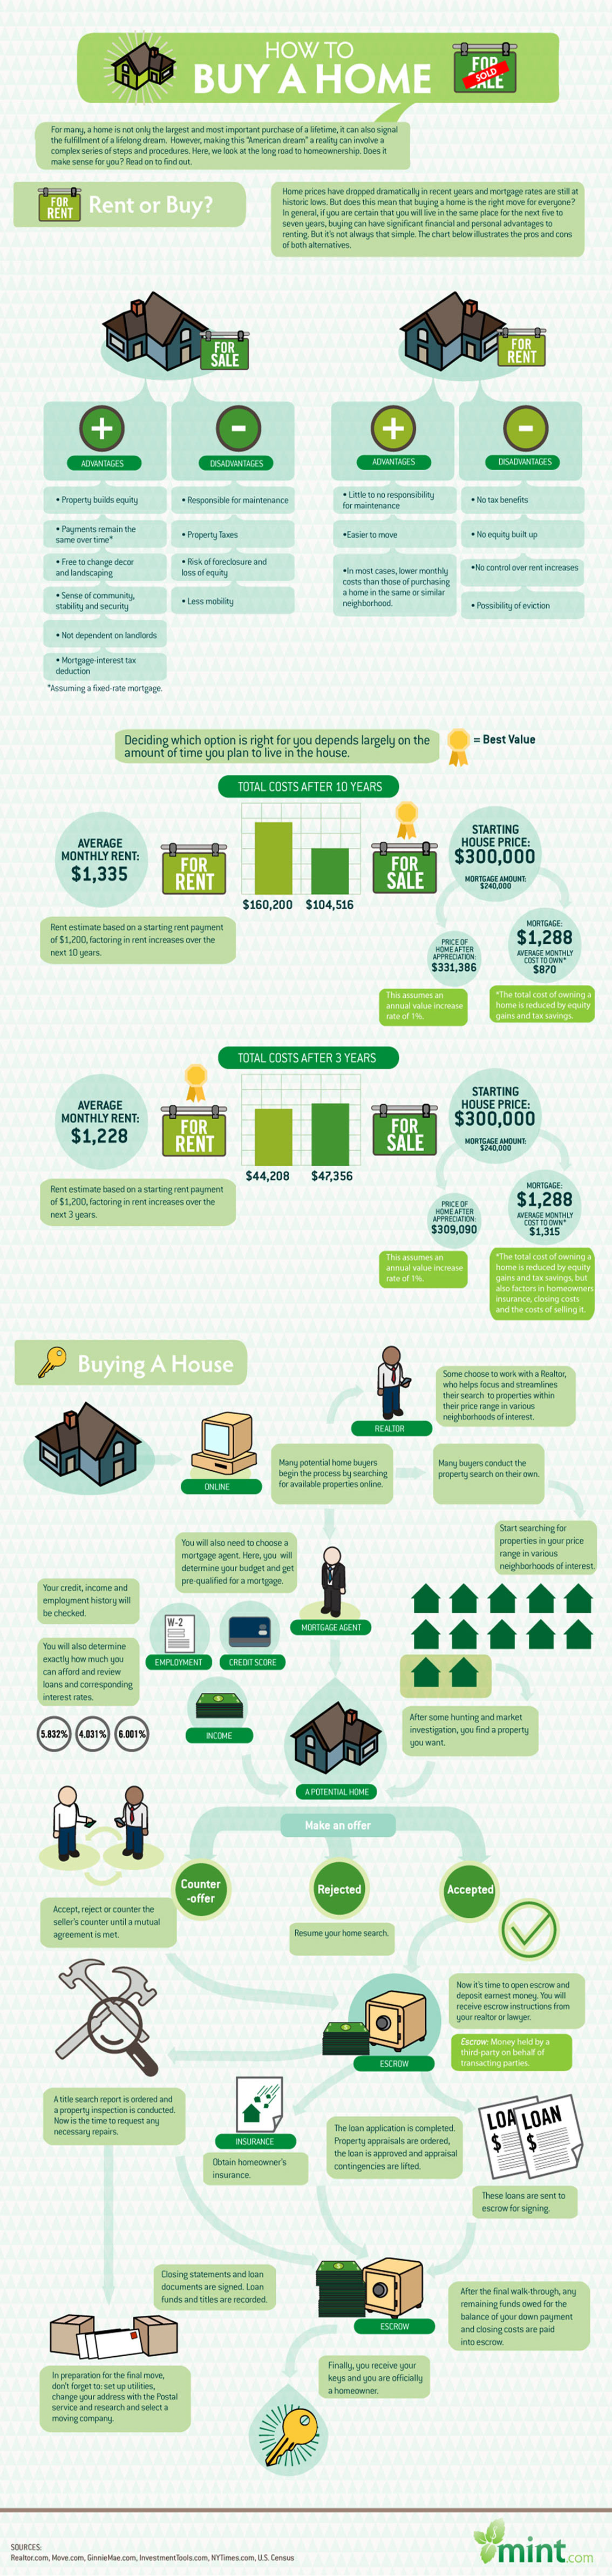 The Cost of Renting vs Buying a Home - Real Estate Infographic